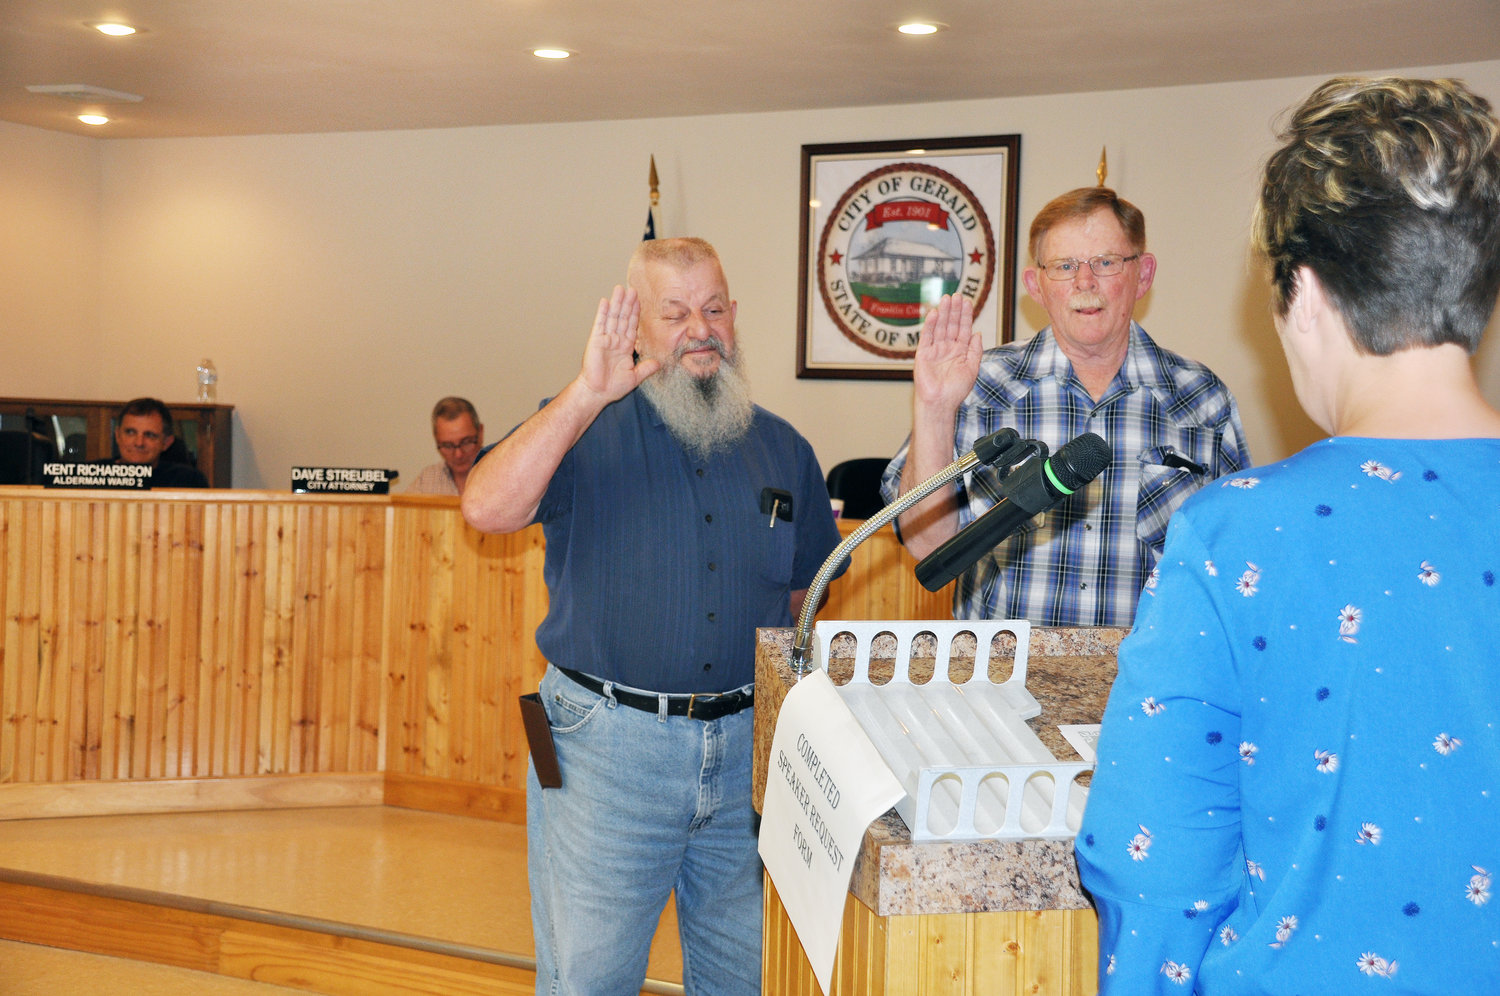 Interim City Clerk Be Ahring swears in Ward 1 Alderman Steve Grgurich and Ed Adams (left to right) at least week's re-organizational meeting of the Gerald Board of Aldermen. Ward 2 Alderman Kent Richardson and city attorney Dave Struebel look on.